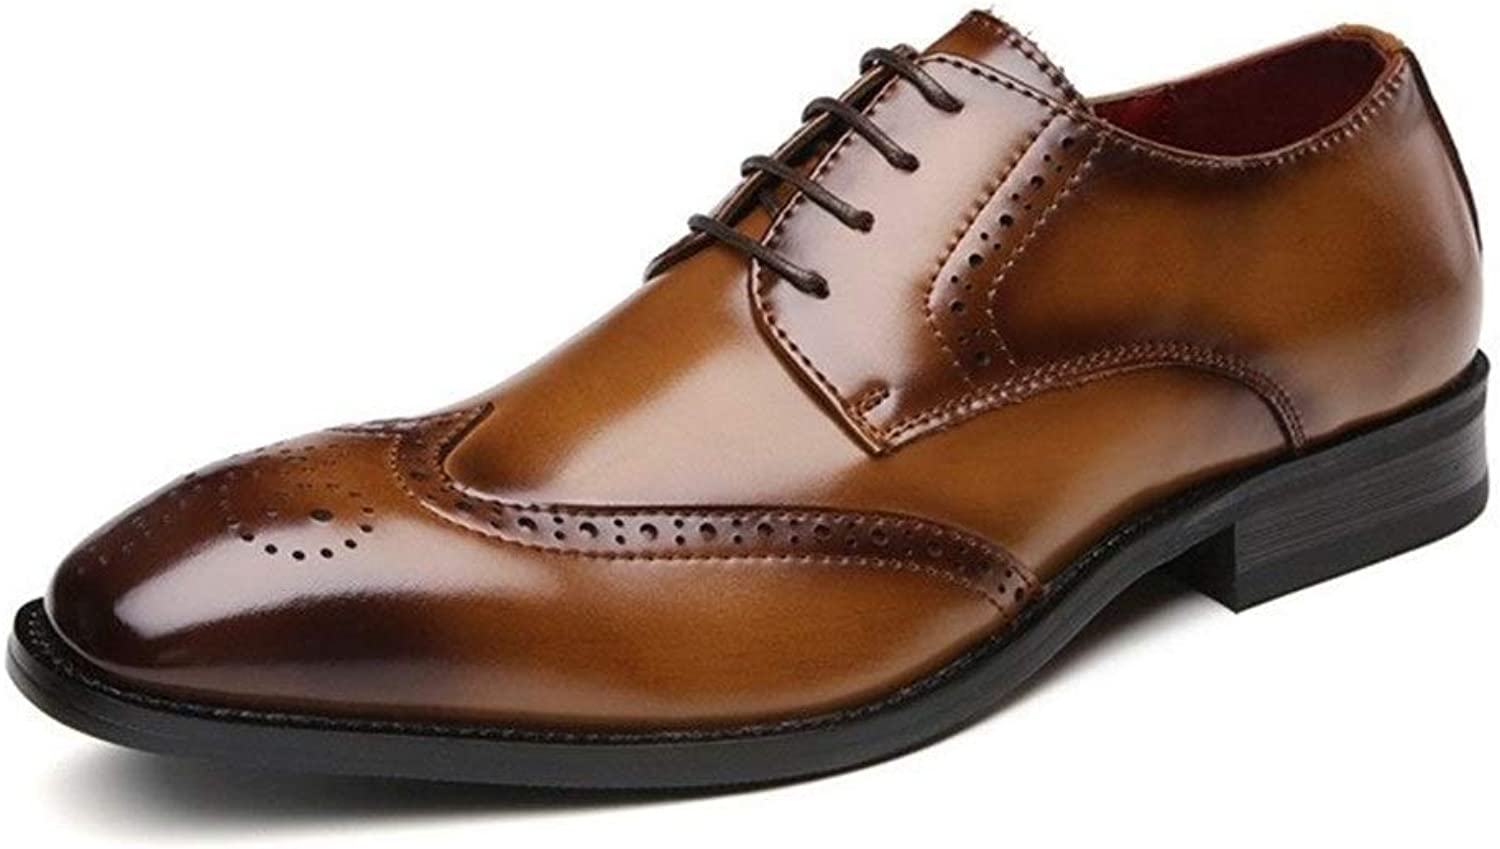 Oxfords Herren Carving Schuhe Egs For Brogue Abendschuhe wPXkZiTuOl